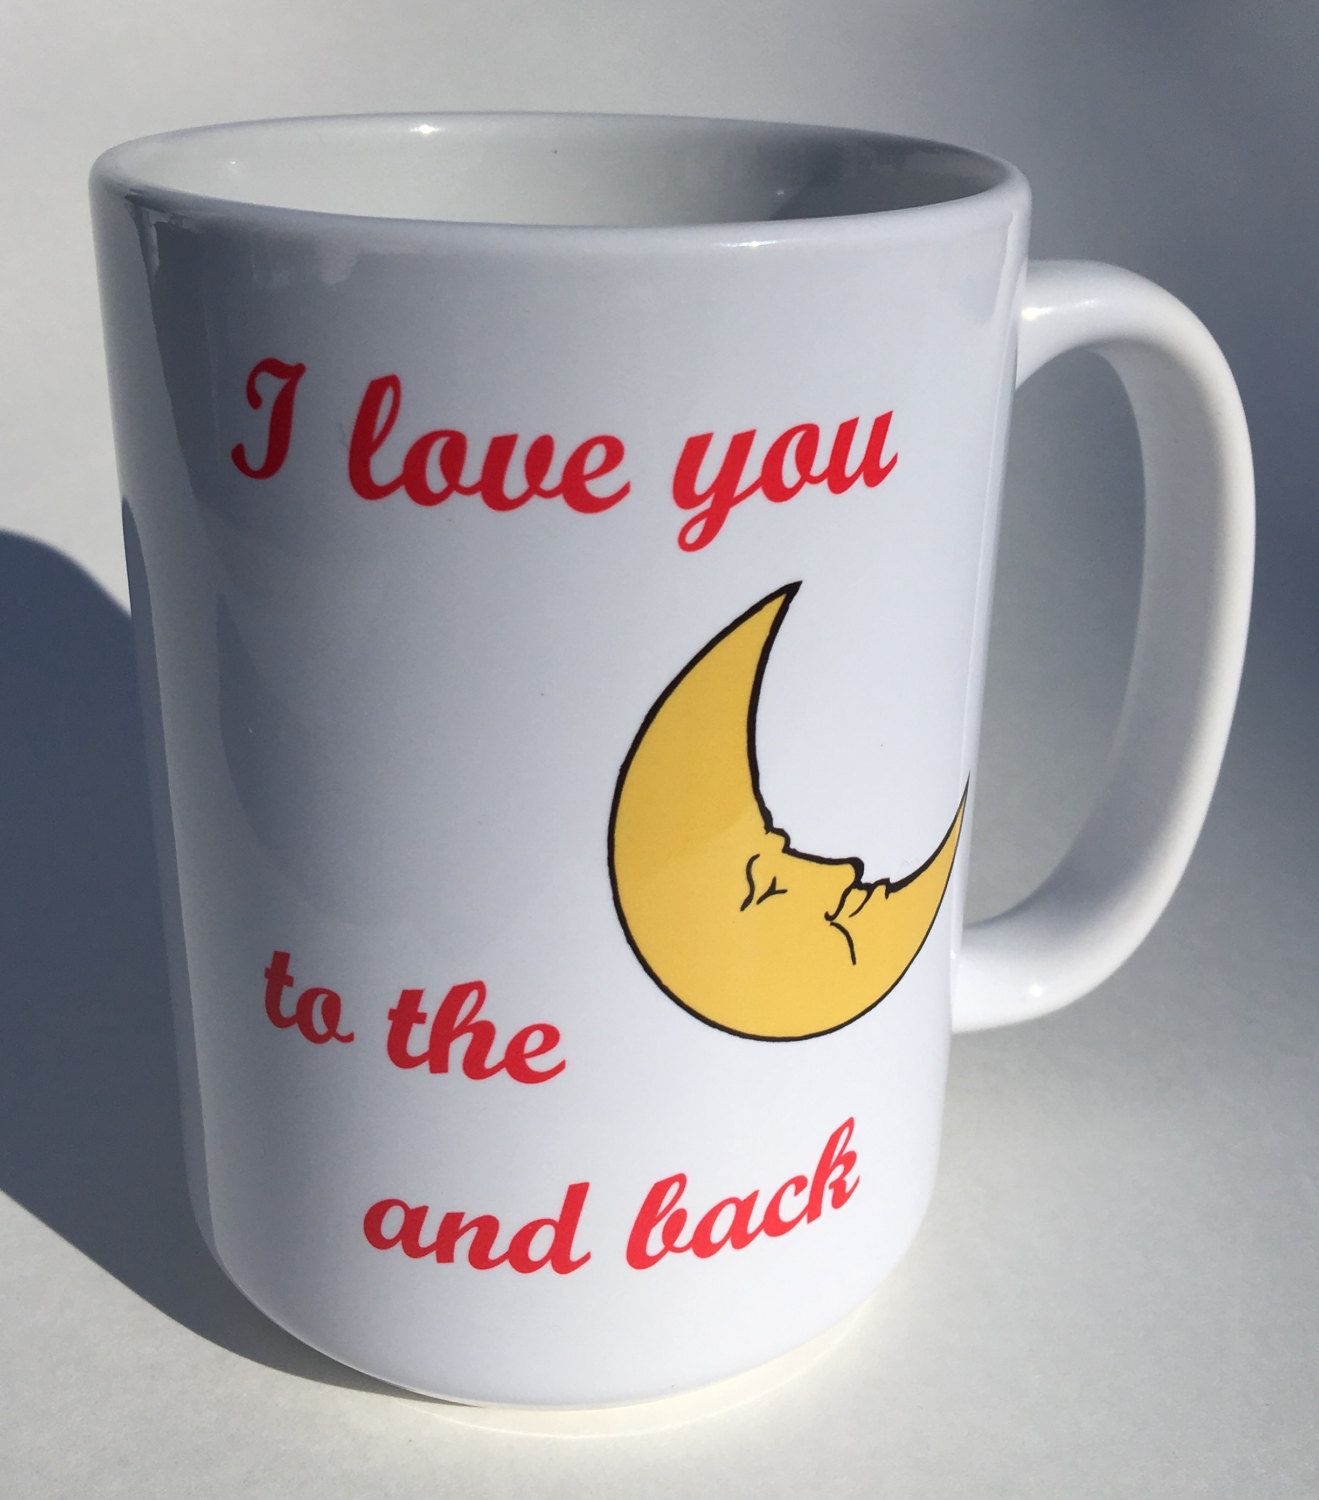 I Love you to the moon and back, 15 oz mug, love you mug, great gift by RAmysCraftRoom on Etsy